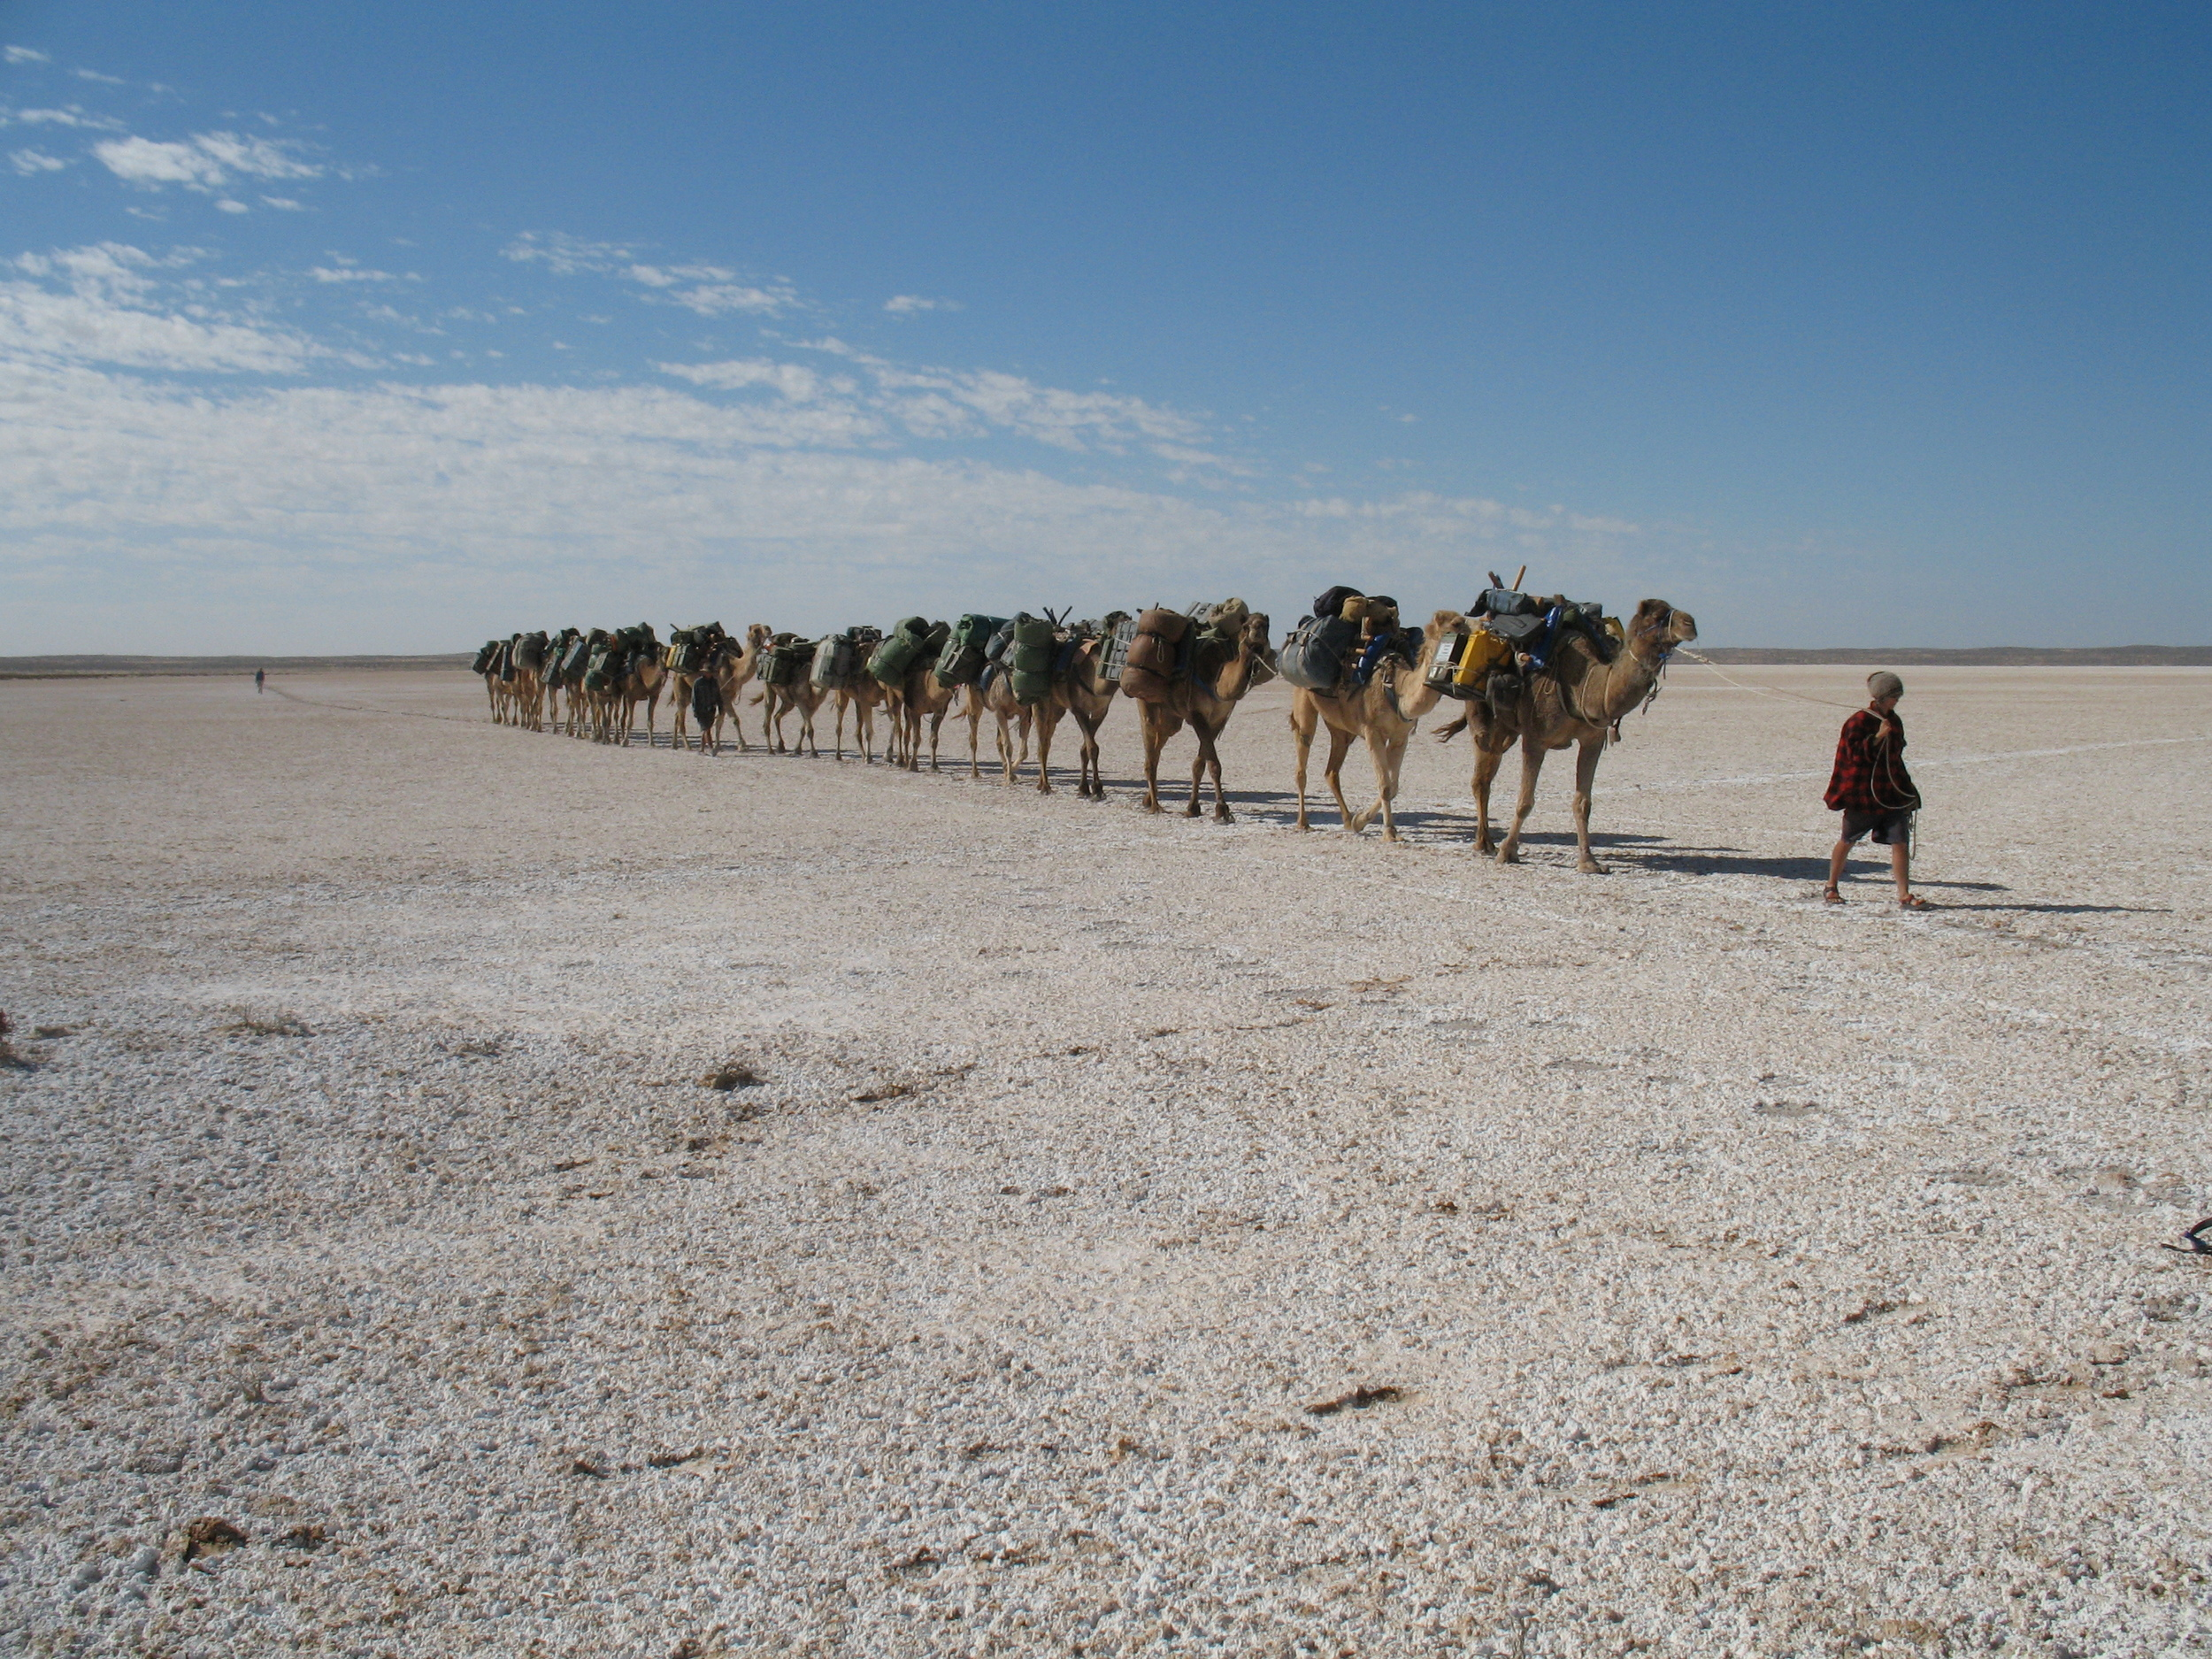 Leading the camels across a small salt lake.